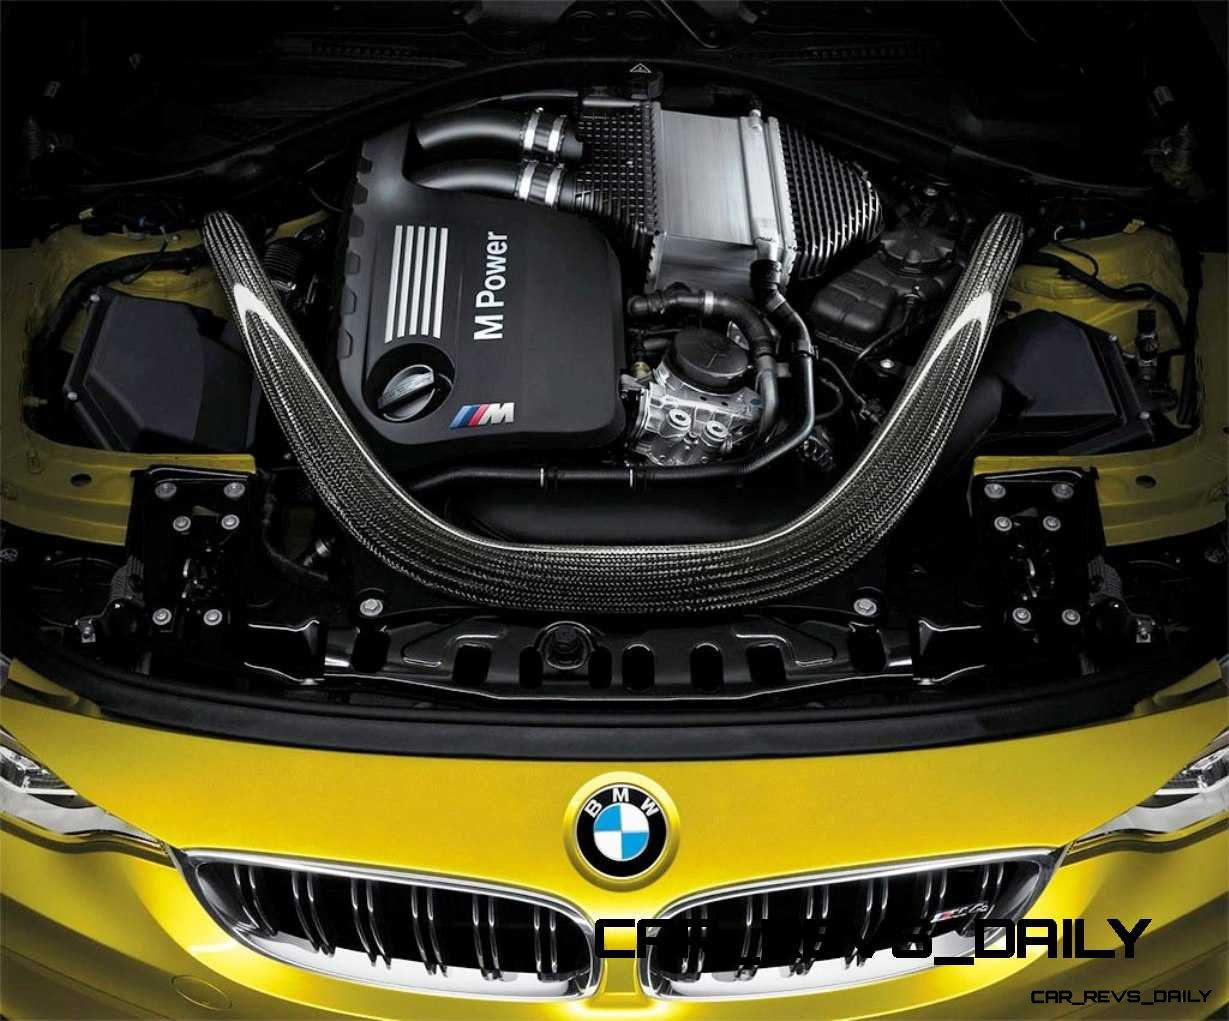 186mph 2014 BMW M4 Screams into Focus 14